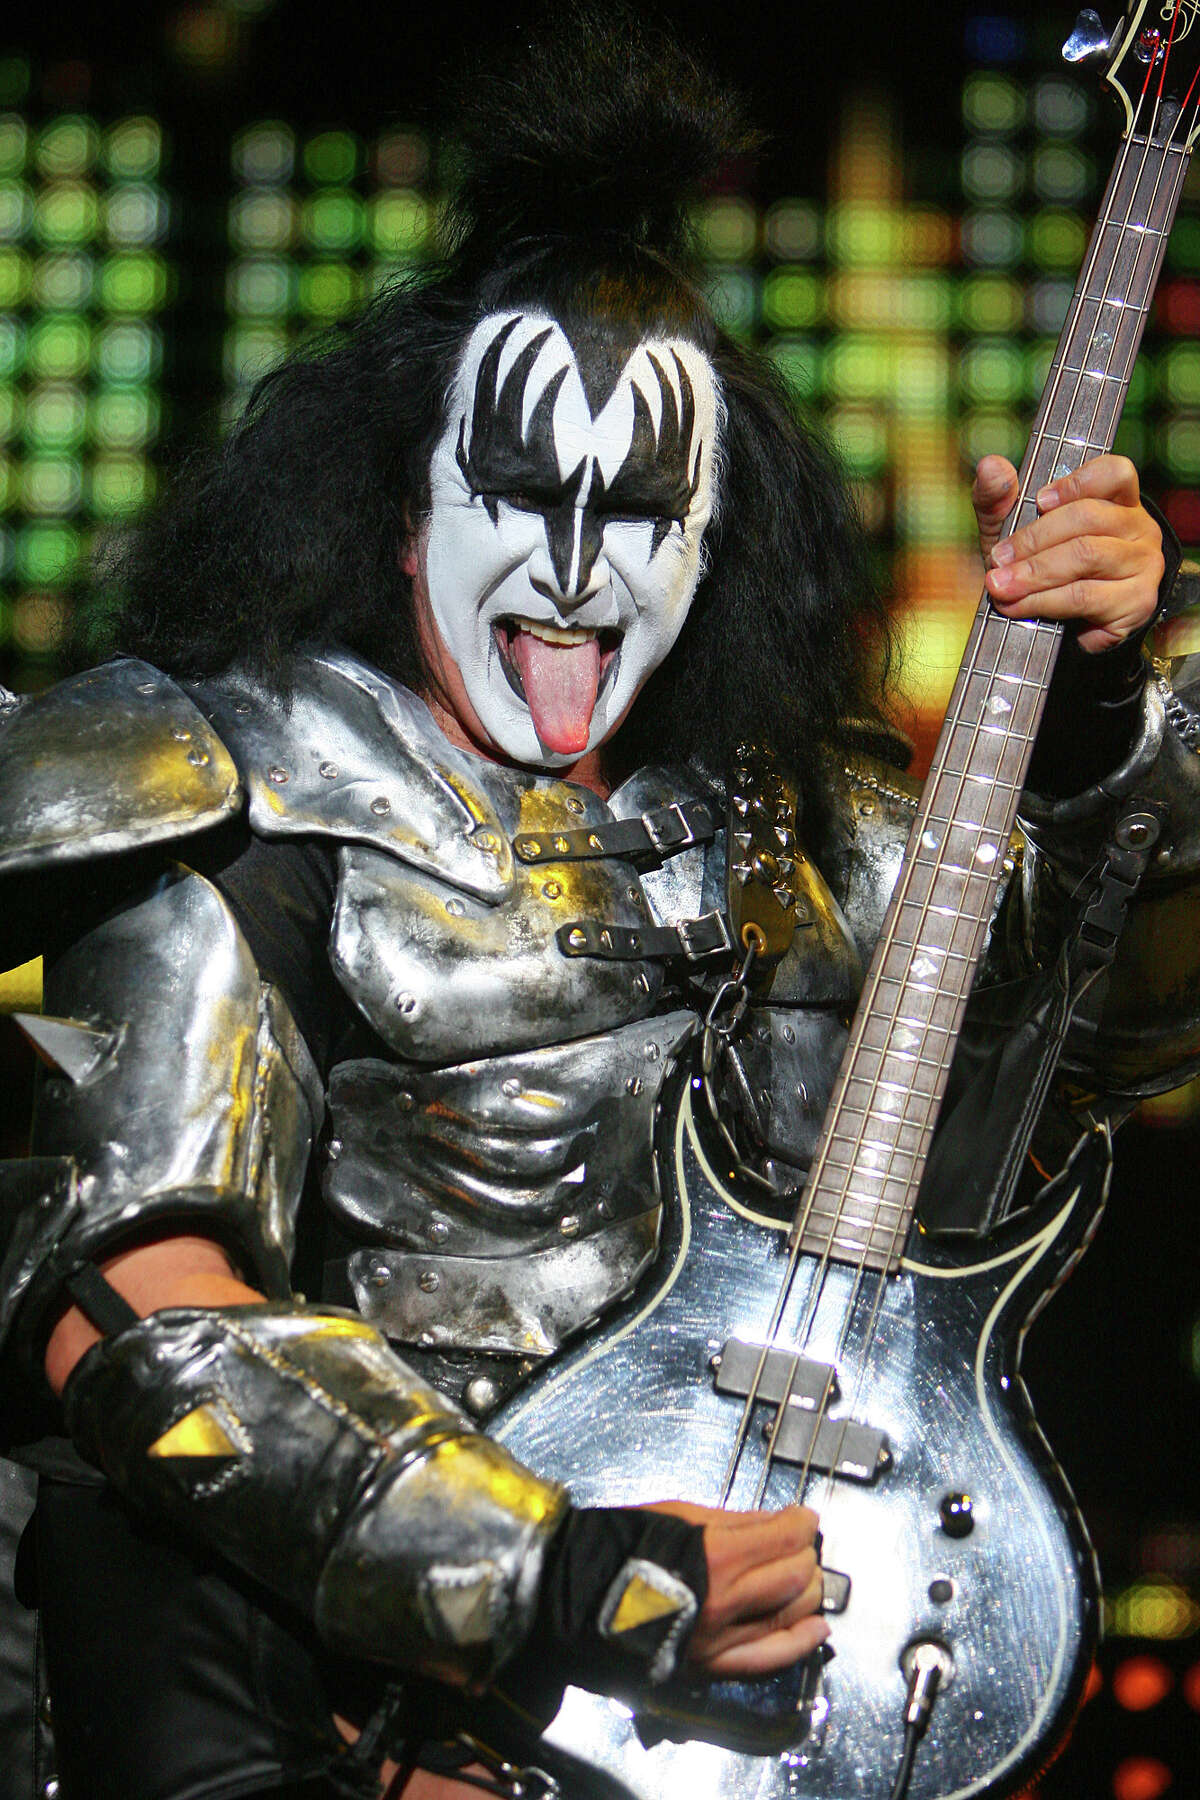 Gene Simmons shows his famous tongue during the KISS concert at the AT&T Center, September 19, 2010. (JENNIFER WHITNEY/ special to the Express-News)